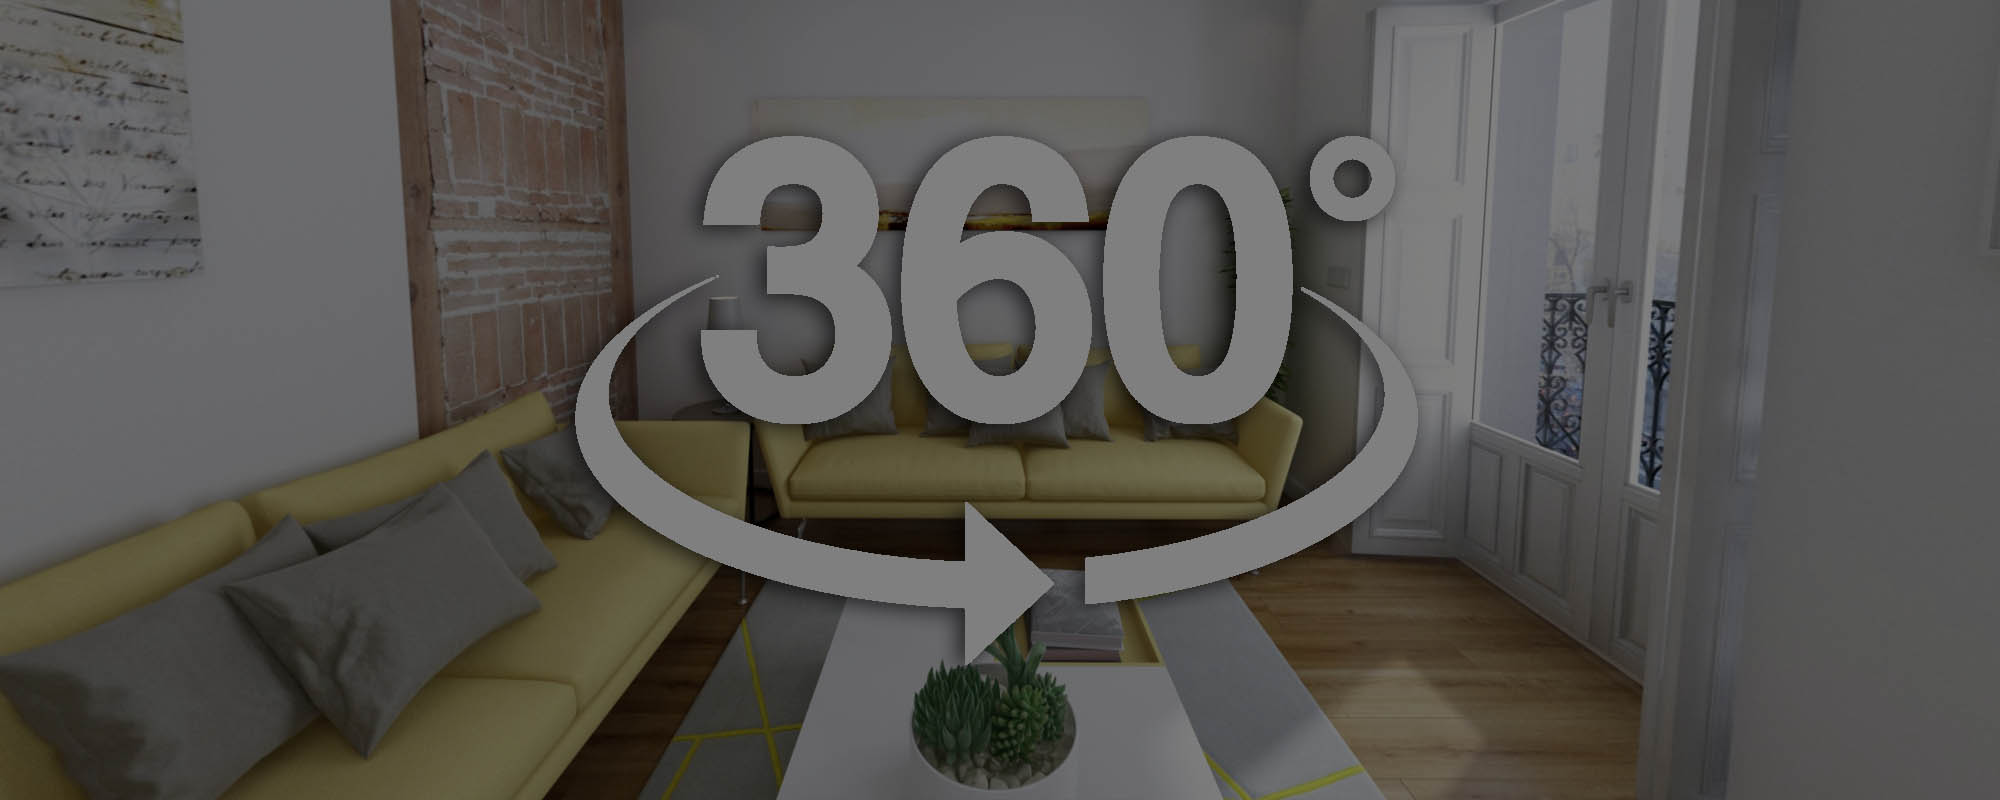 Tour virtual de una vivienda en Madrid con vistas 360º VR